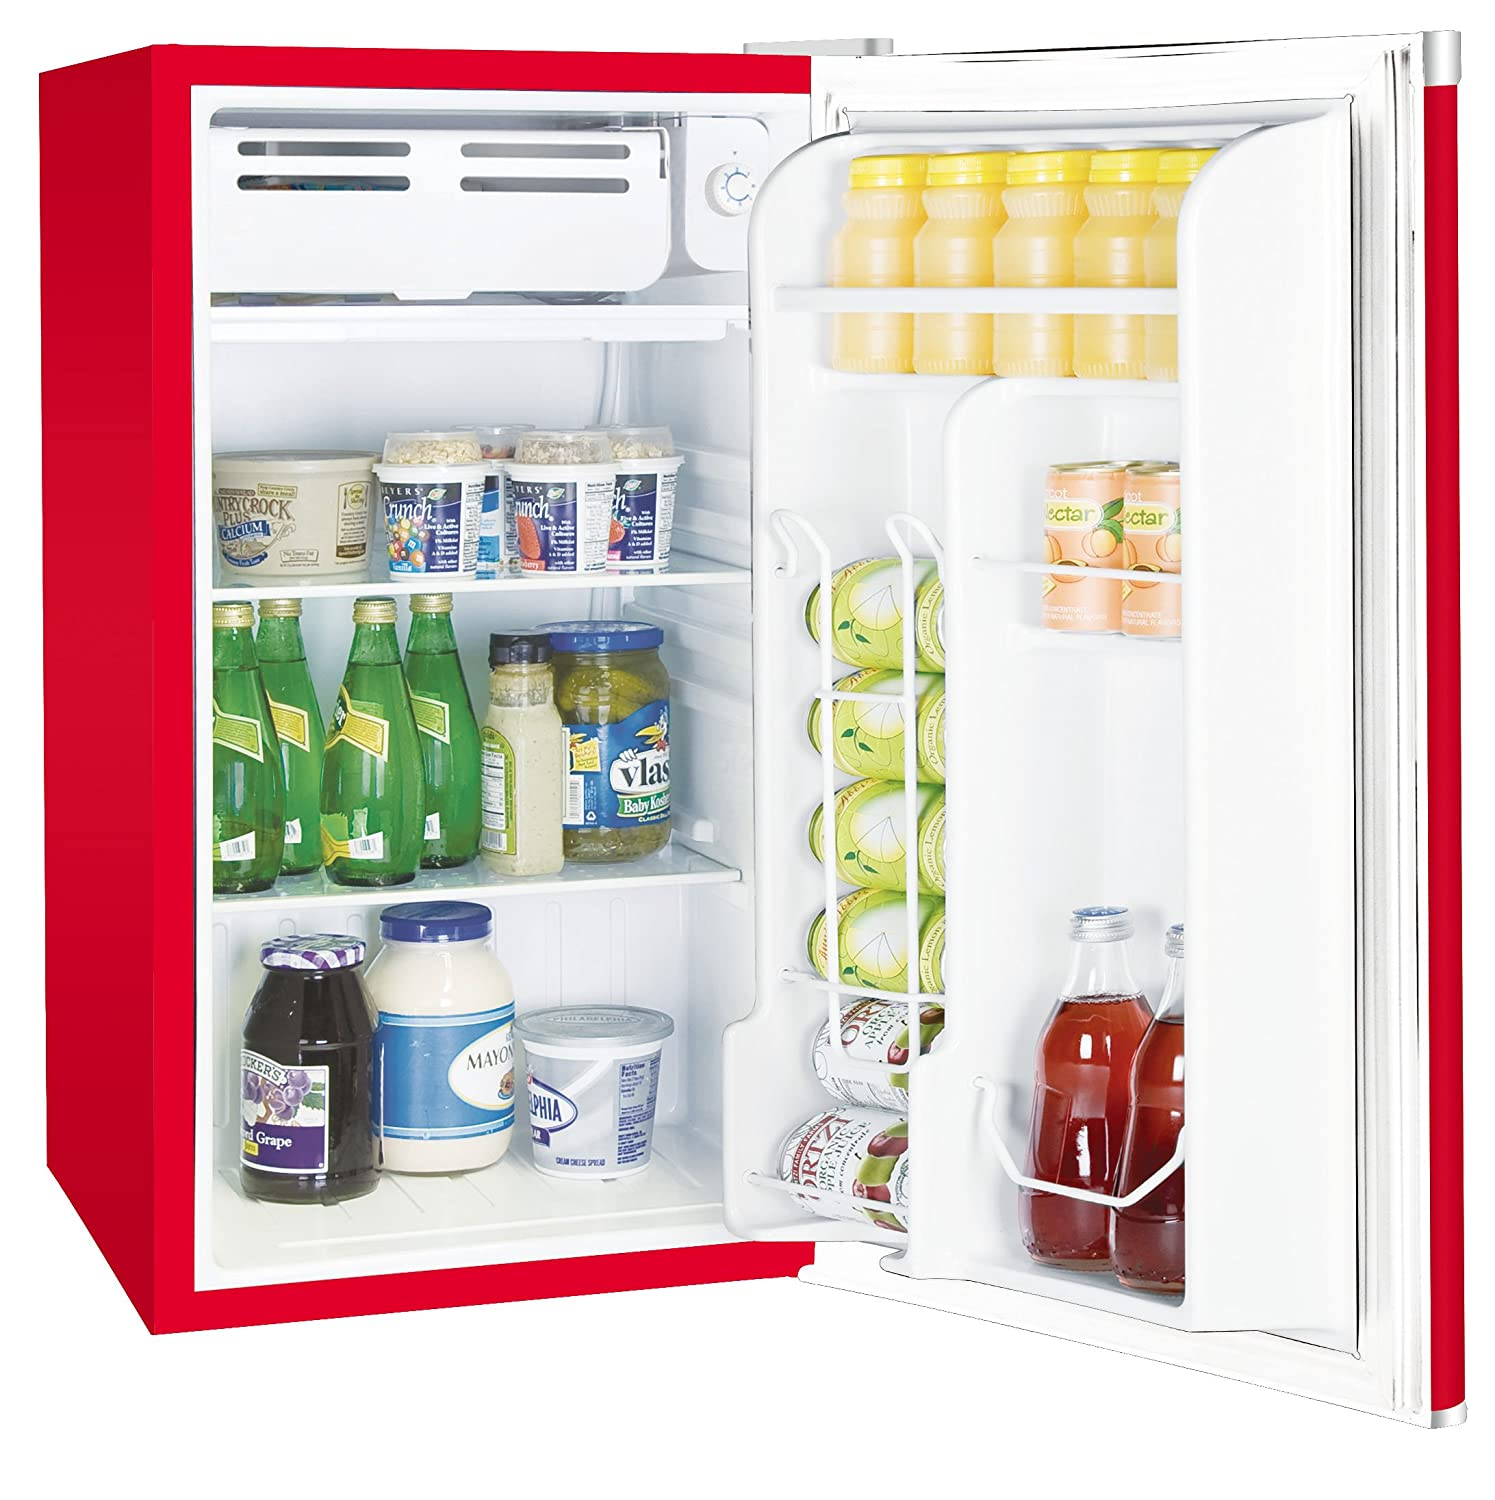 10 Best pact Refrigerators Oct 2017 Top Rated 2018 List